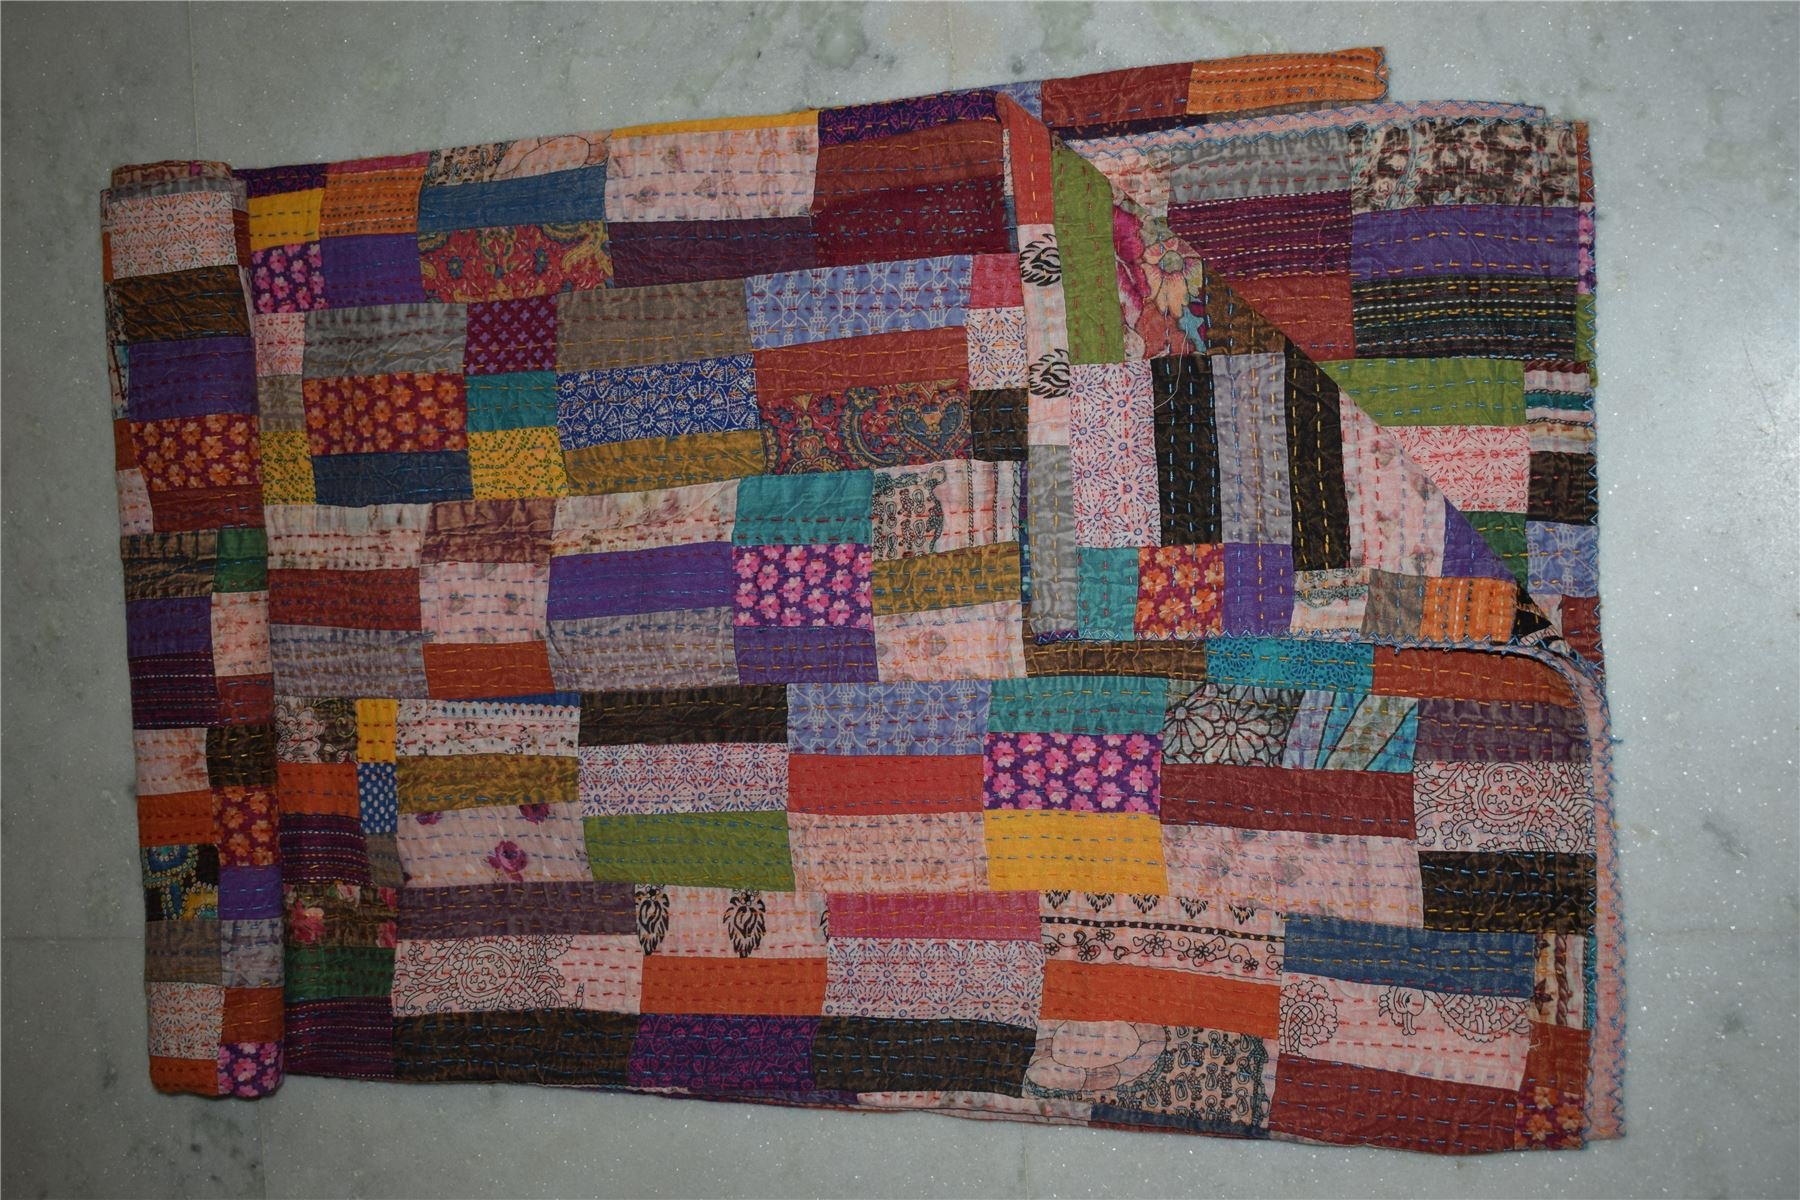 Queen Size Kantha Quilt Hand Block Print Patchwork Bedding Blanket Throw51